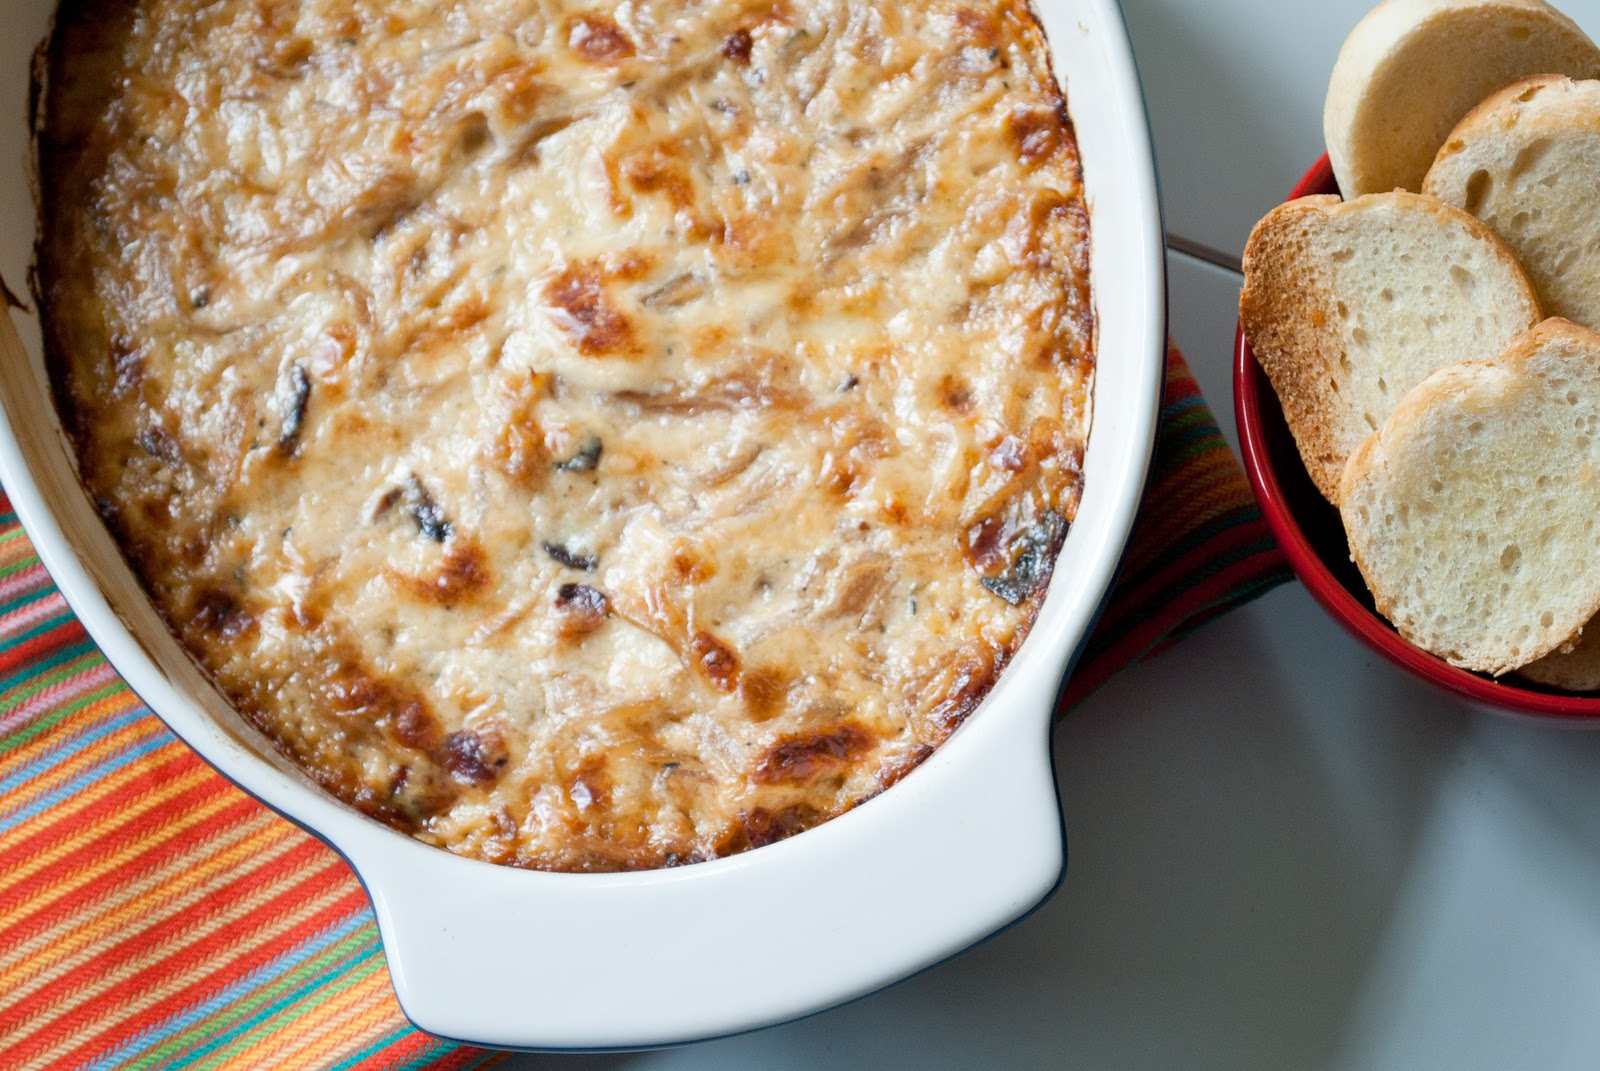 Ryan Bakes: Hot Caramelized Onion Dip with Bacon and Gruyere